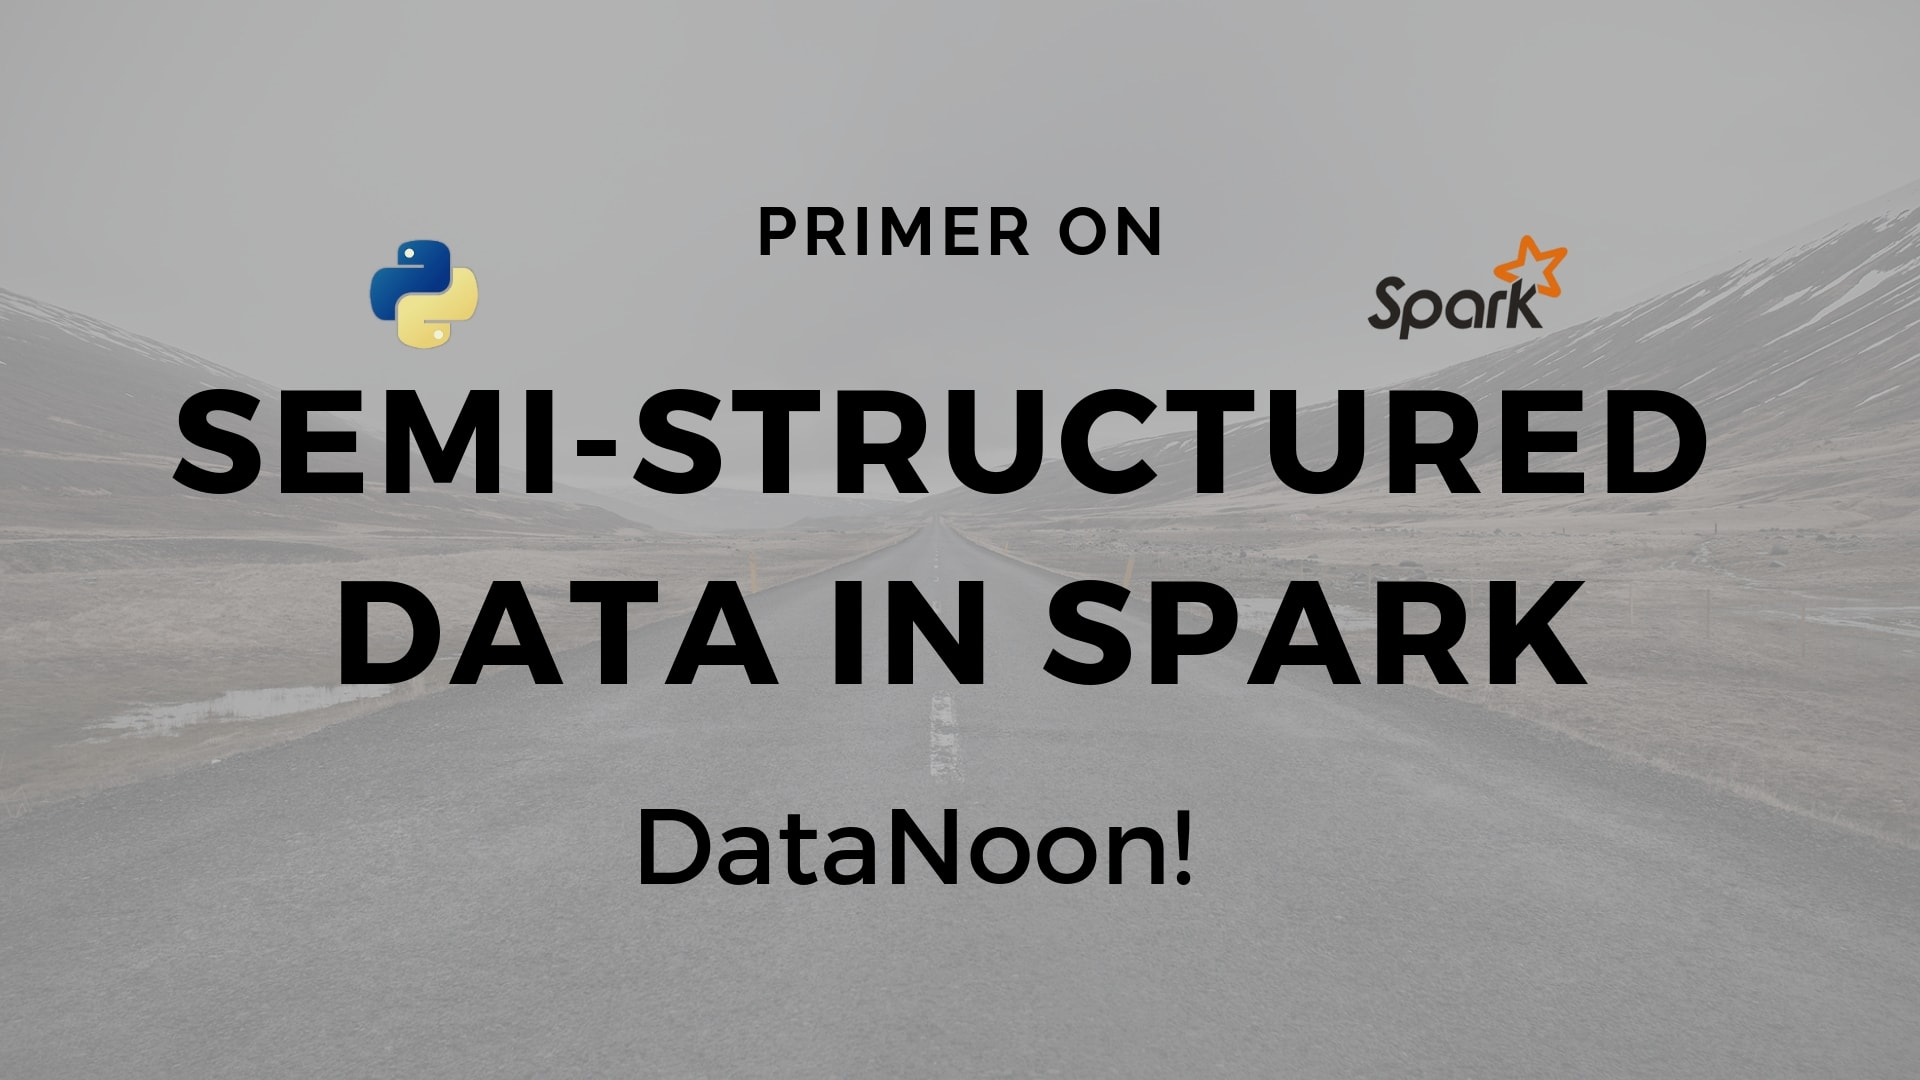 Semi-Structured Data in Spark (pyspark) - JSON